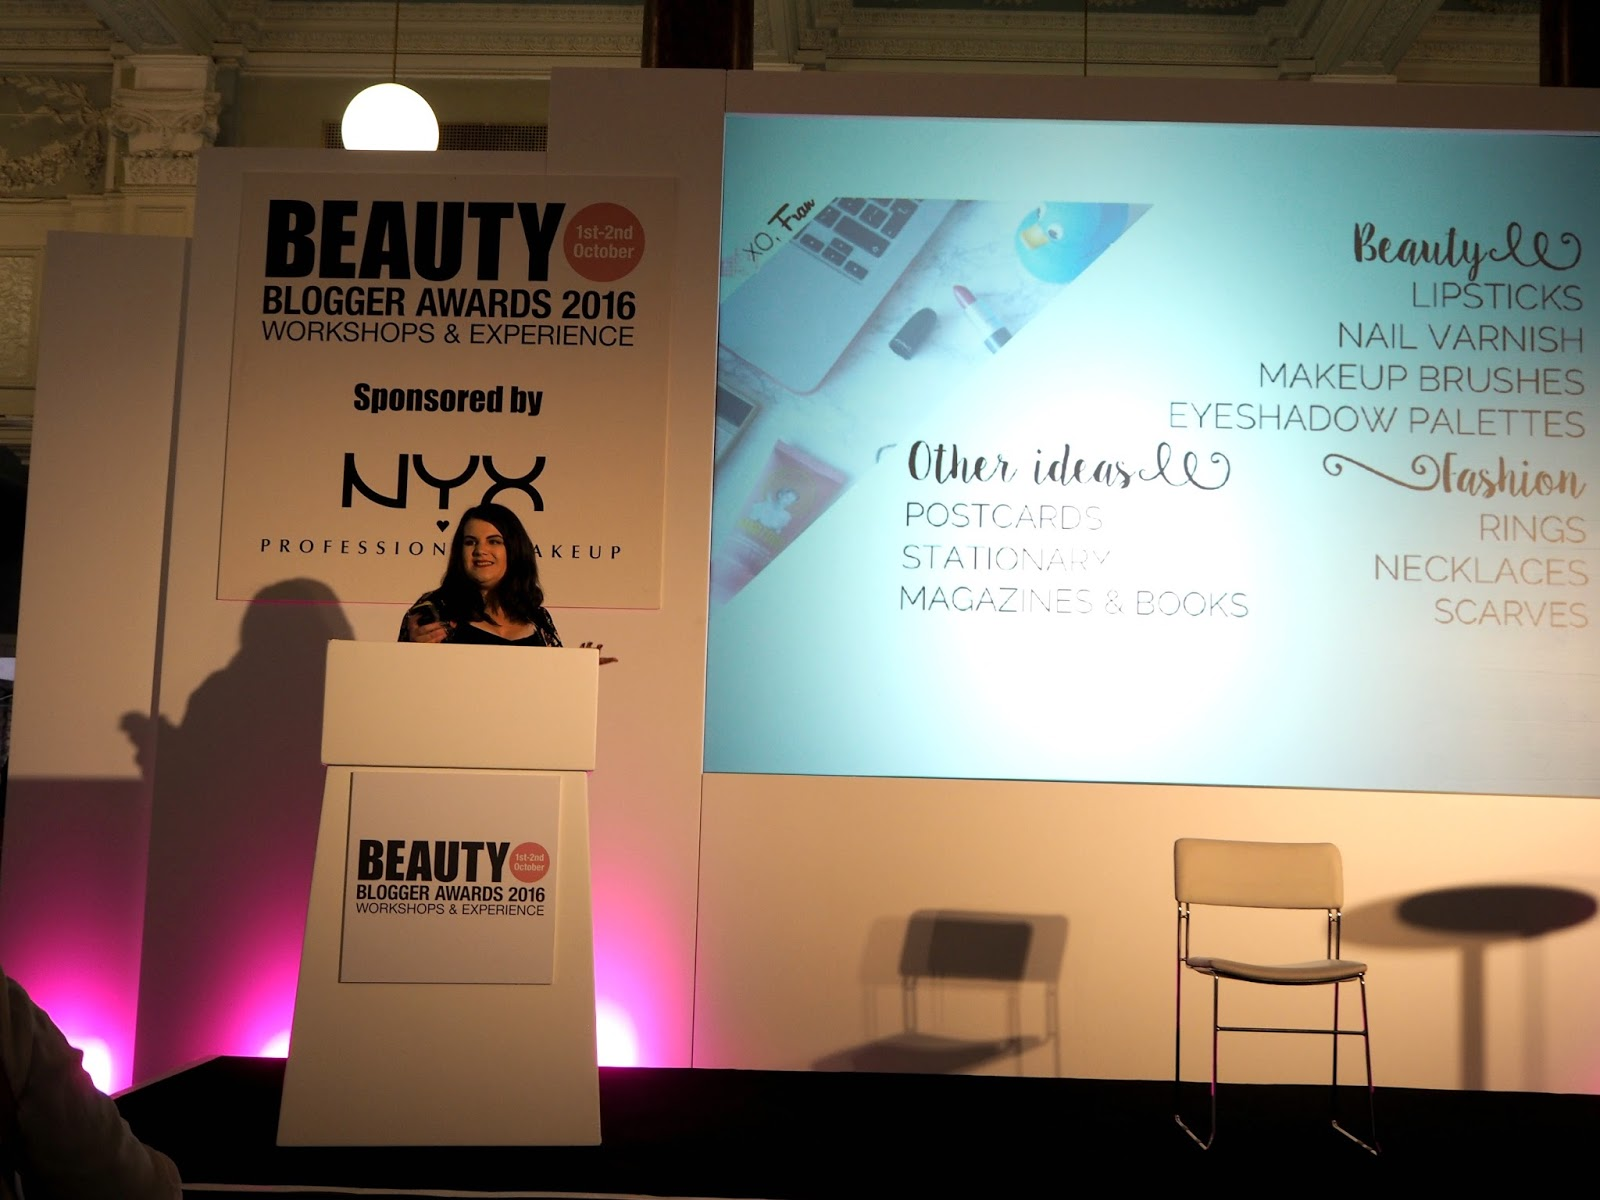 beauty blogger fran presenting at beauty bloggers awards